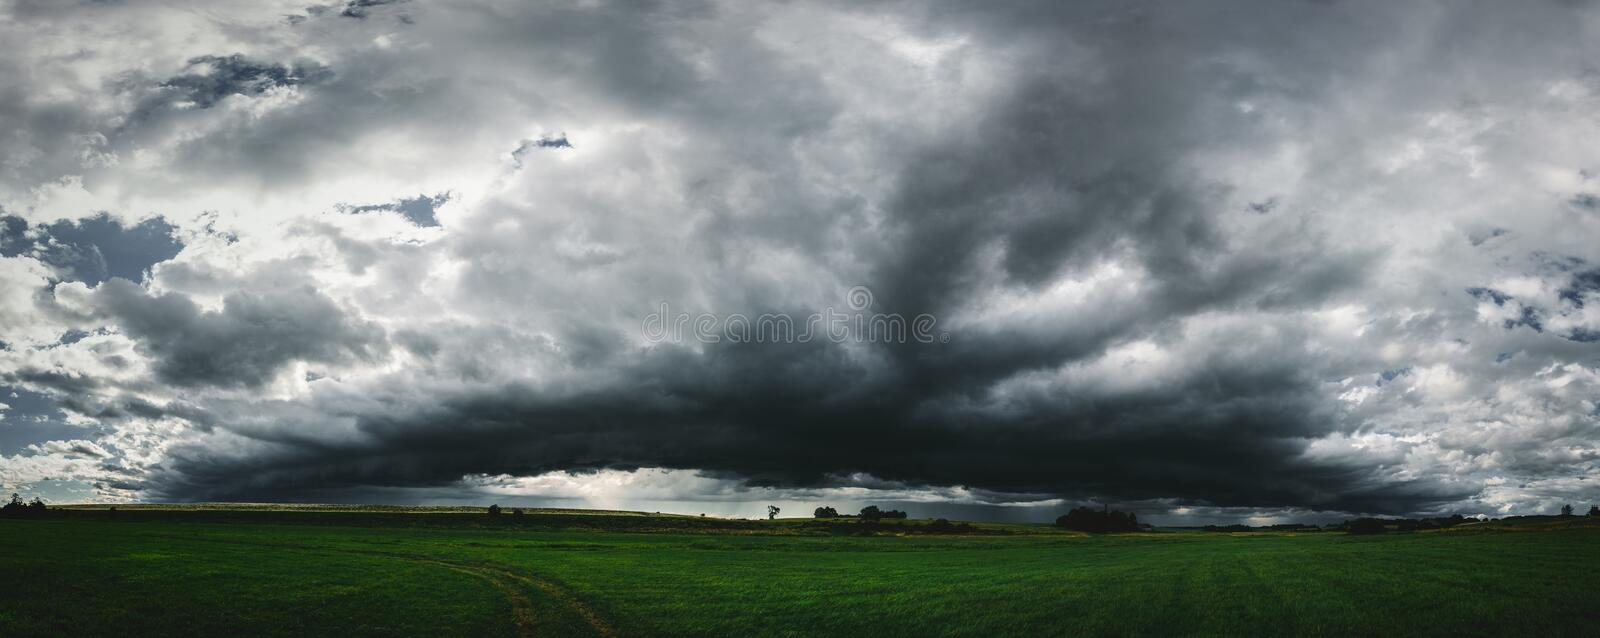 Dark storm clouds panorama above the green grass field stock photo